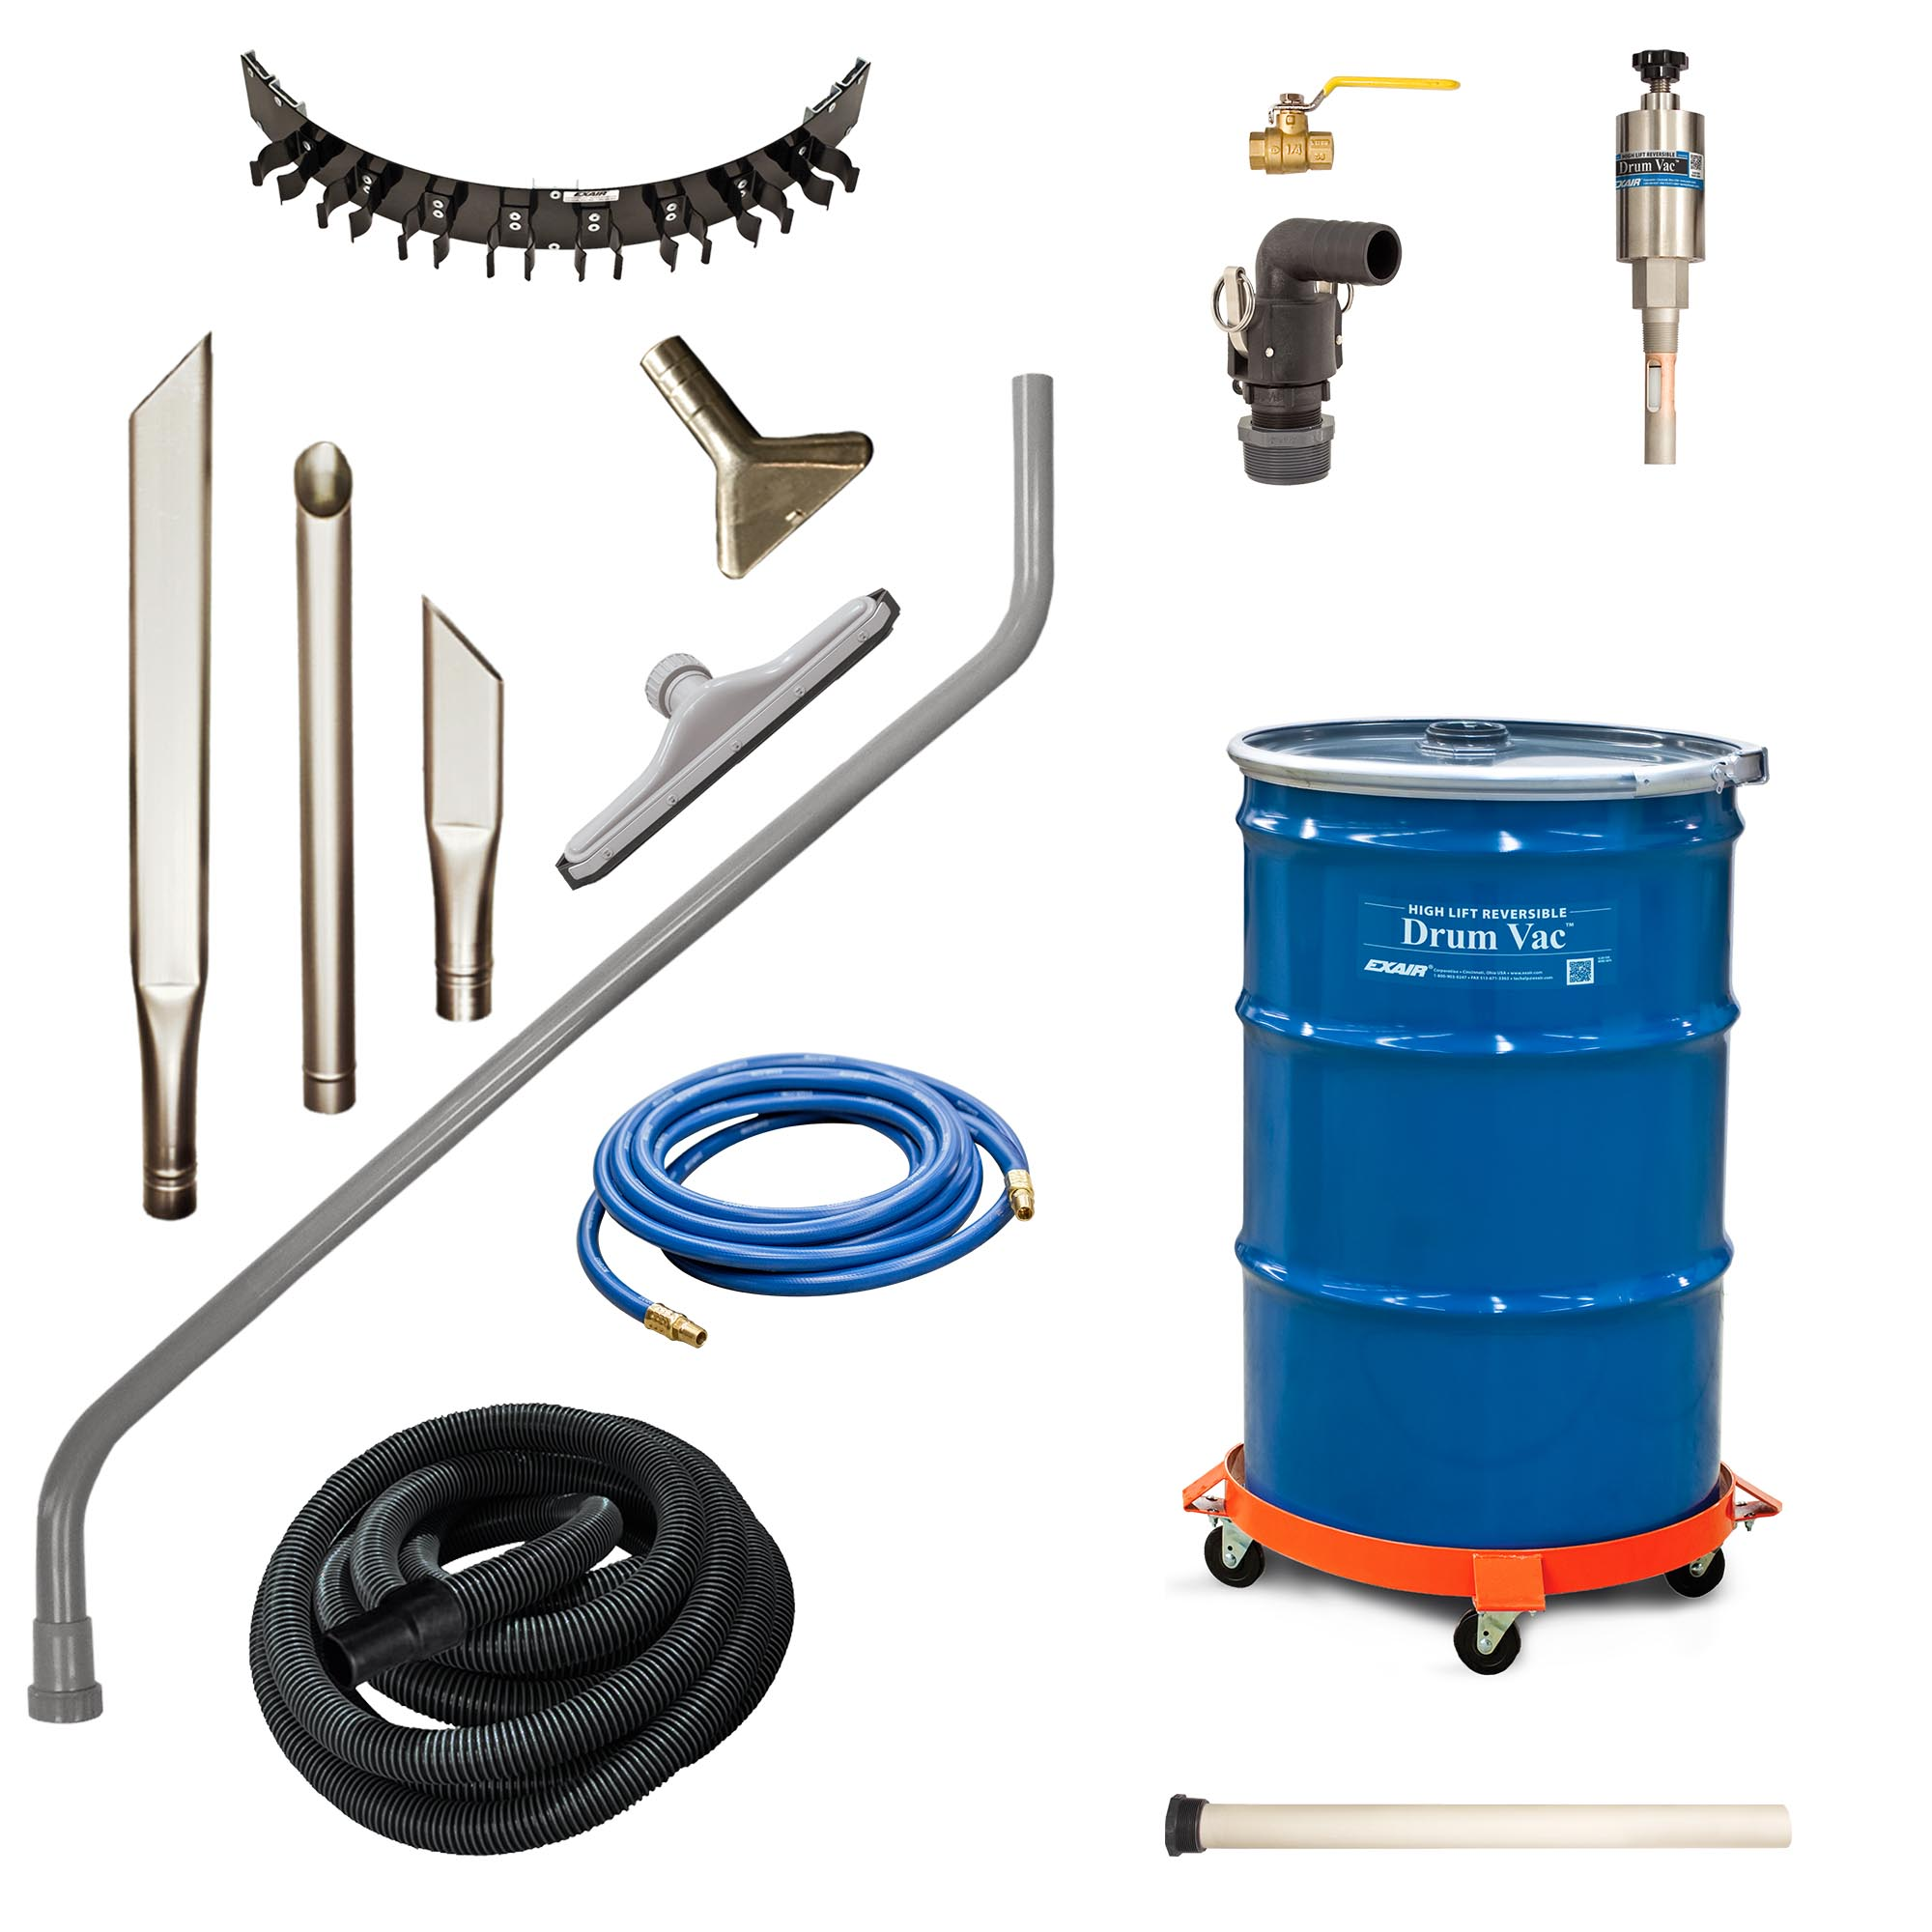 Model 6395-30 30 Gallon High Lift Premium Reversible Drum Vac System includes heavy duty tools, drum and drum dolly.